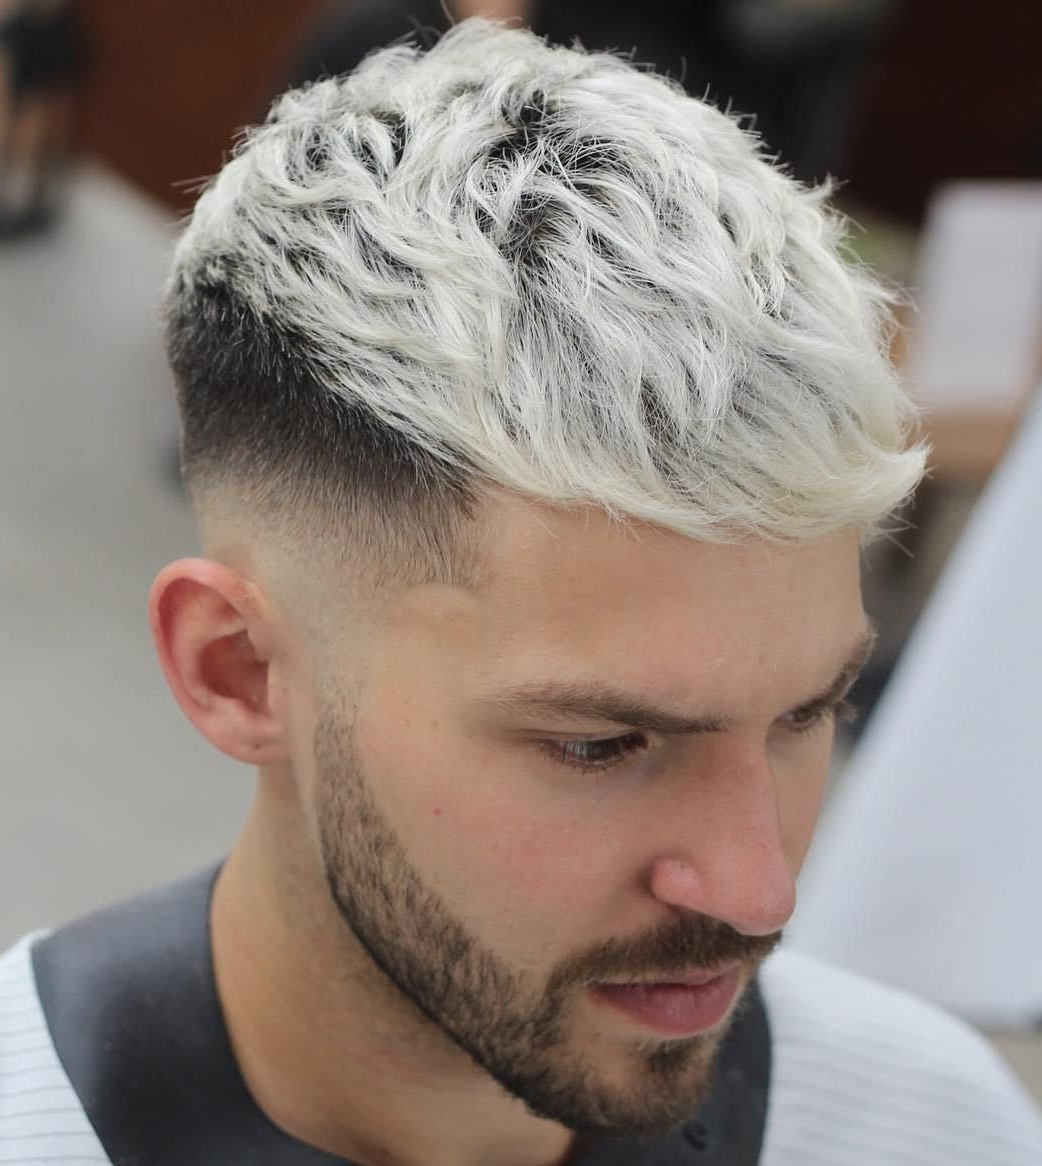 Newest Mohawk Hairstyles With Length And Frosted Tips With Regard To 20 Stylish Men's Hipster Haircuts (View 13 of 20)